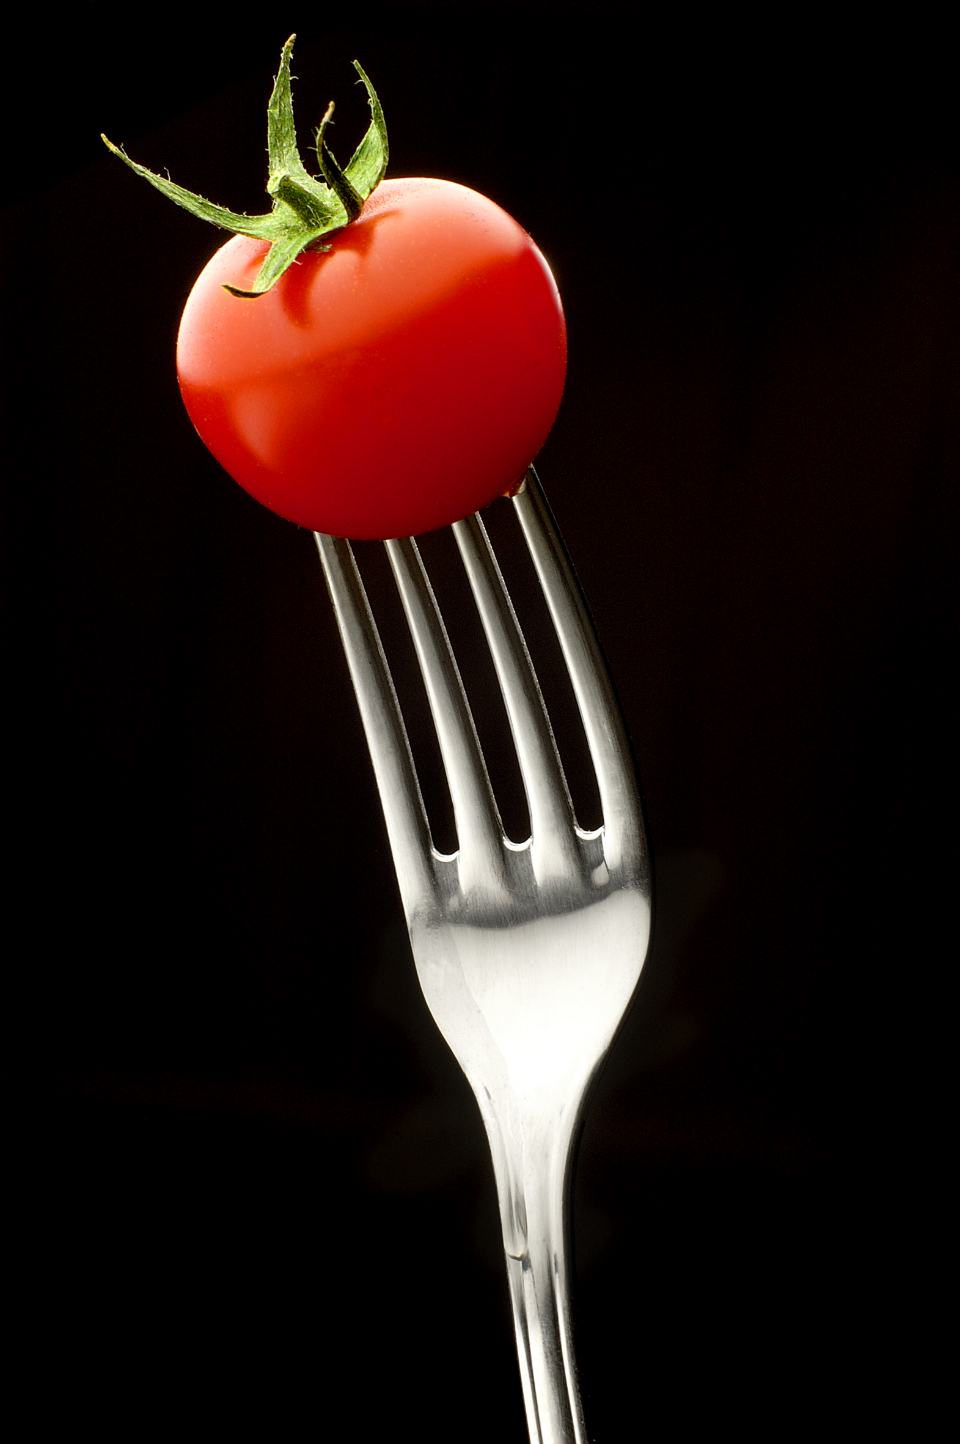 tomato fork red black background food tasteful tasty fresh vegetable health raw cherry tomato